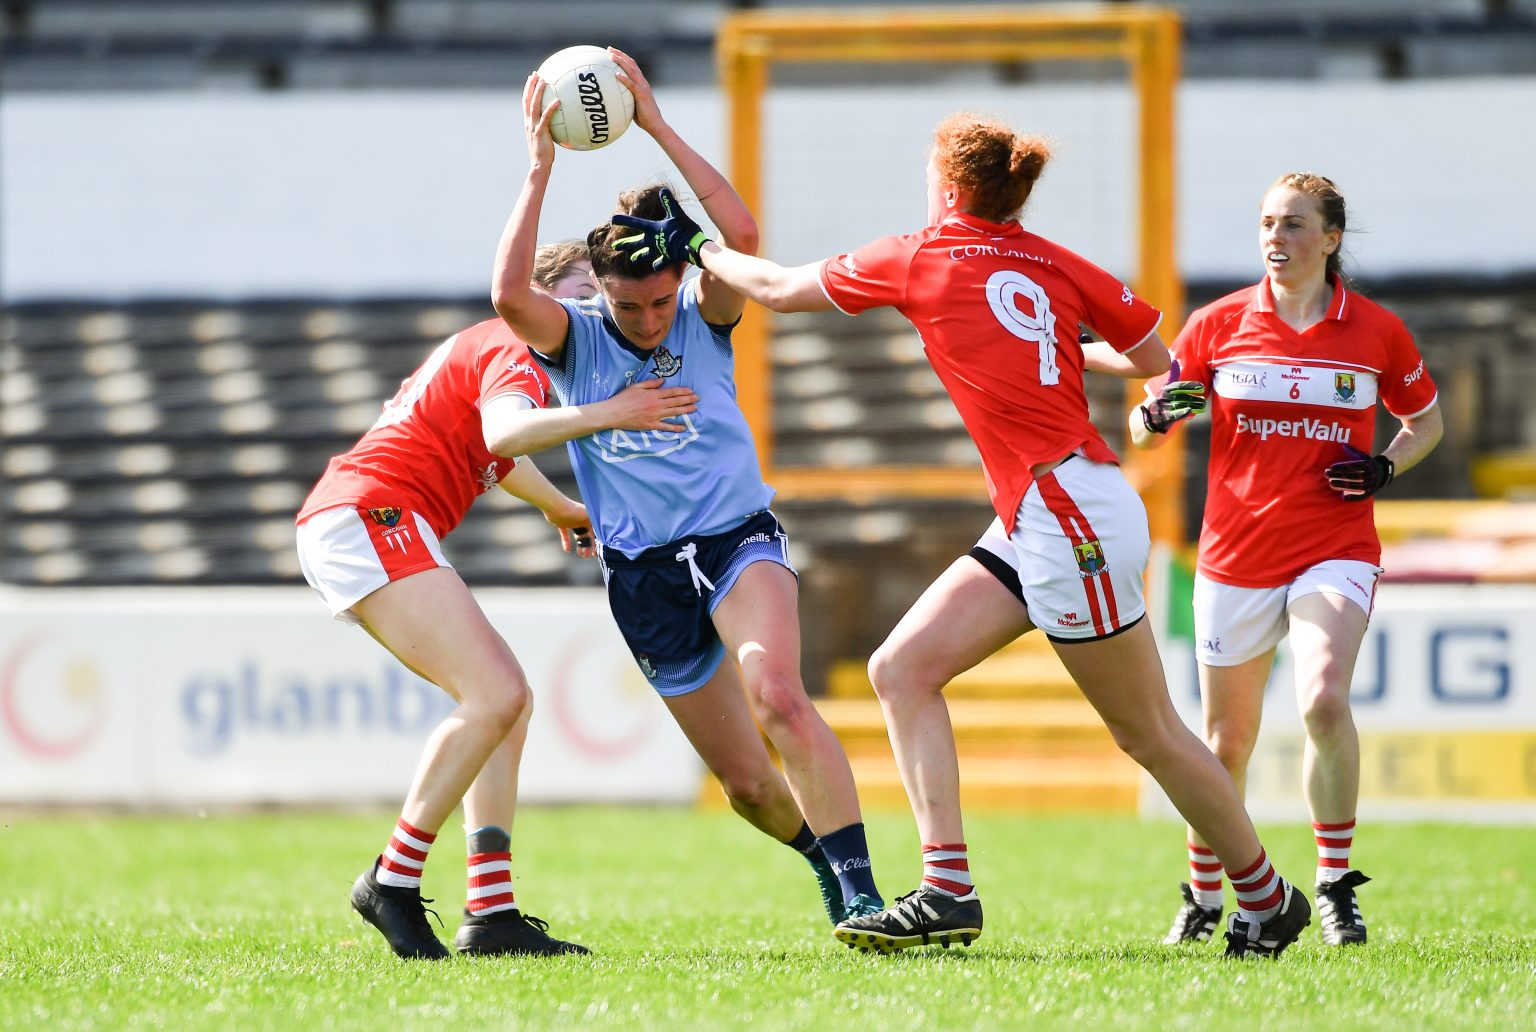 Dublin Ladies Footballer In a sky blue jersey and navy shorts is tackled by two Cork players in red jerseys and white shorts during the Lidl NFL Semi Final